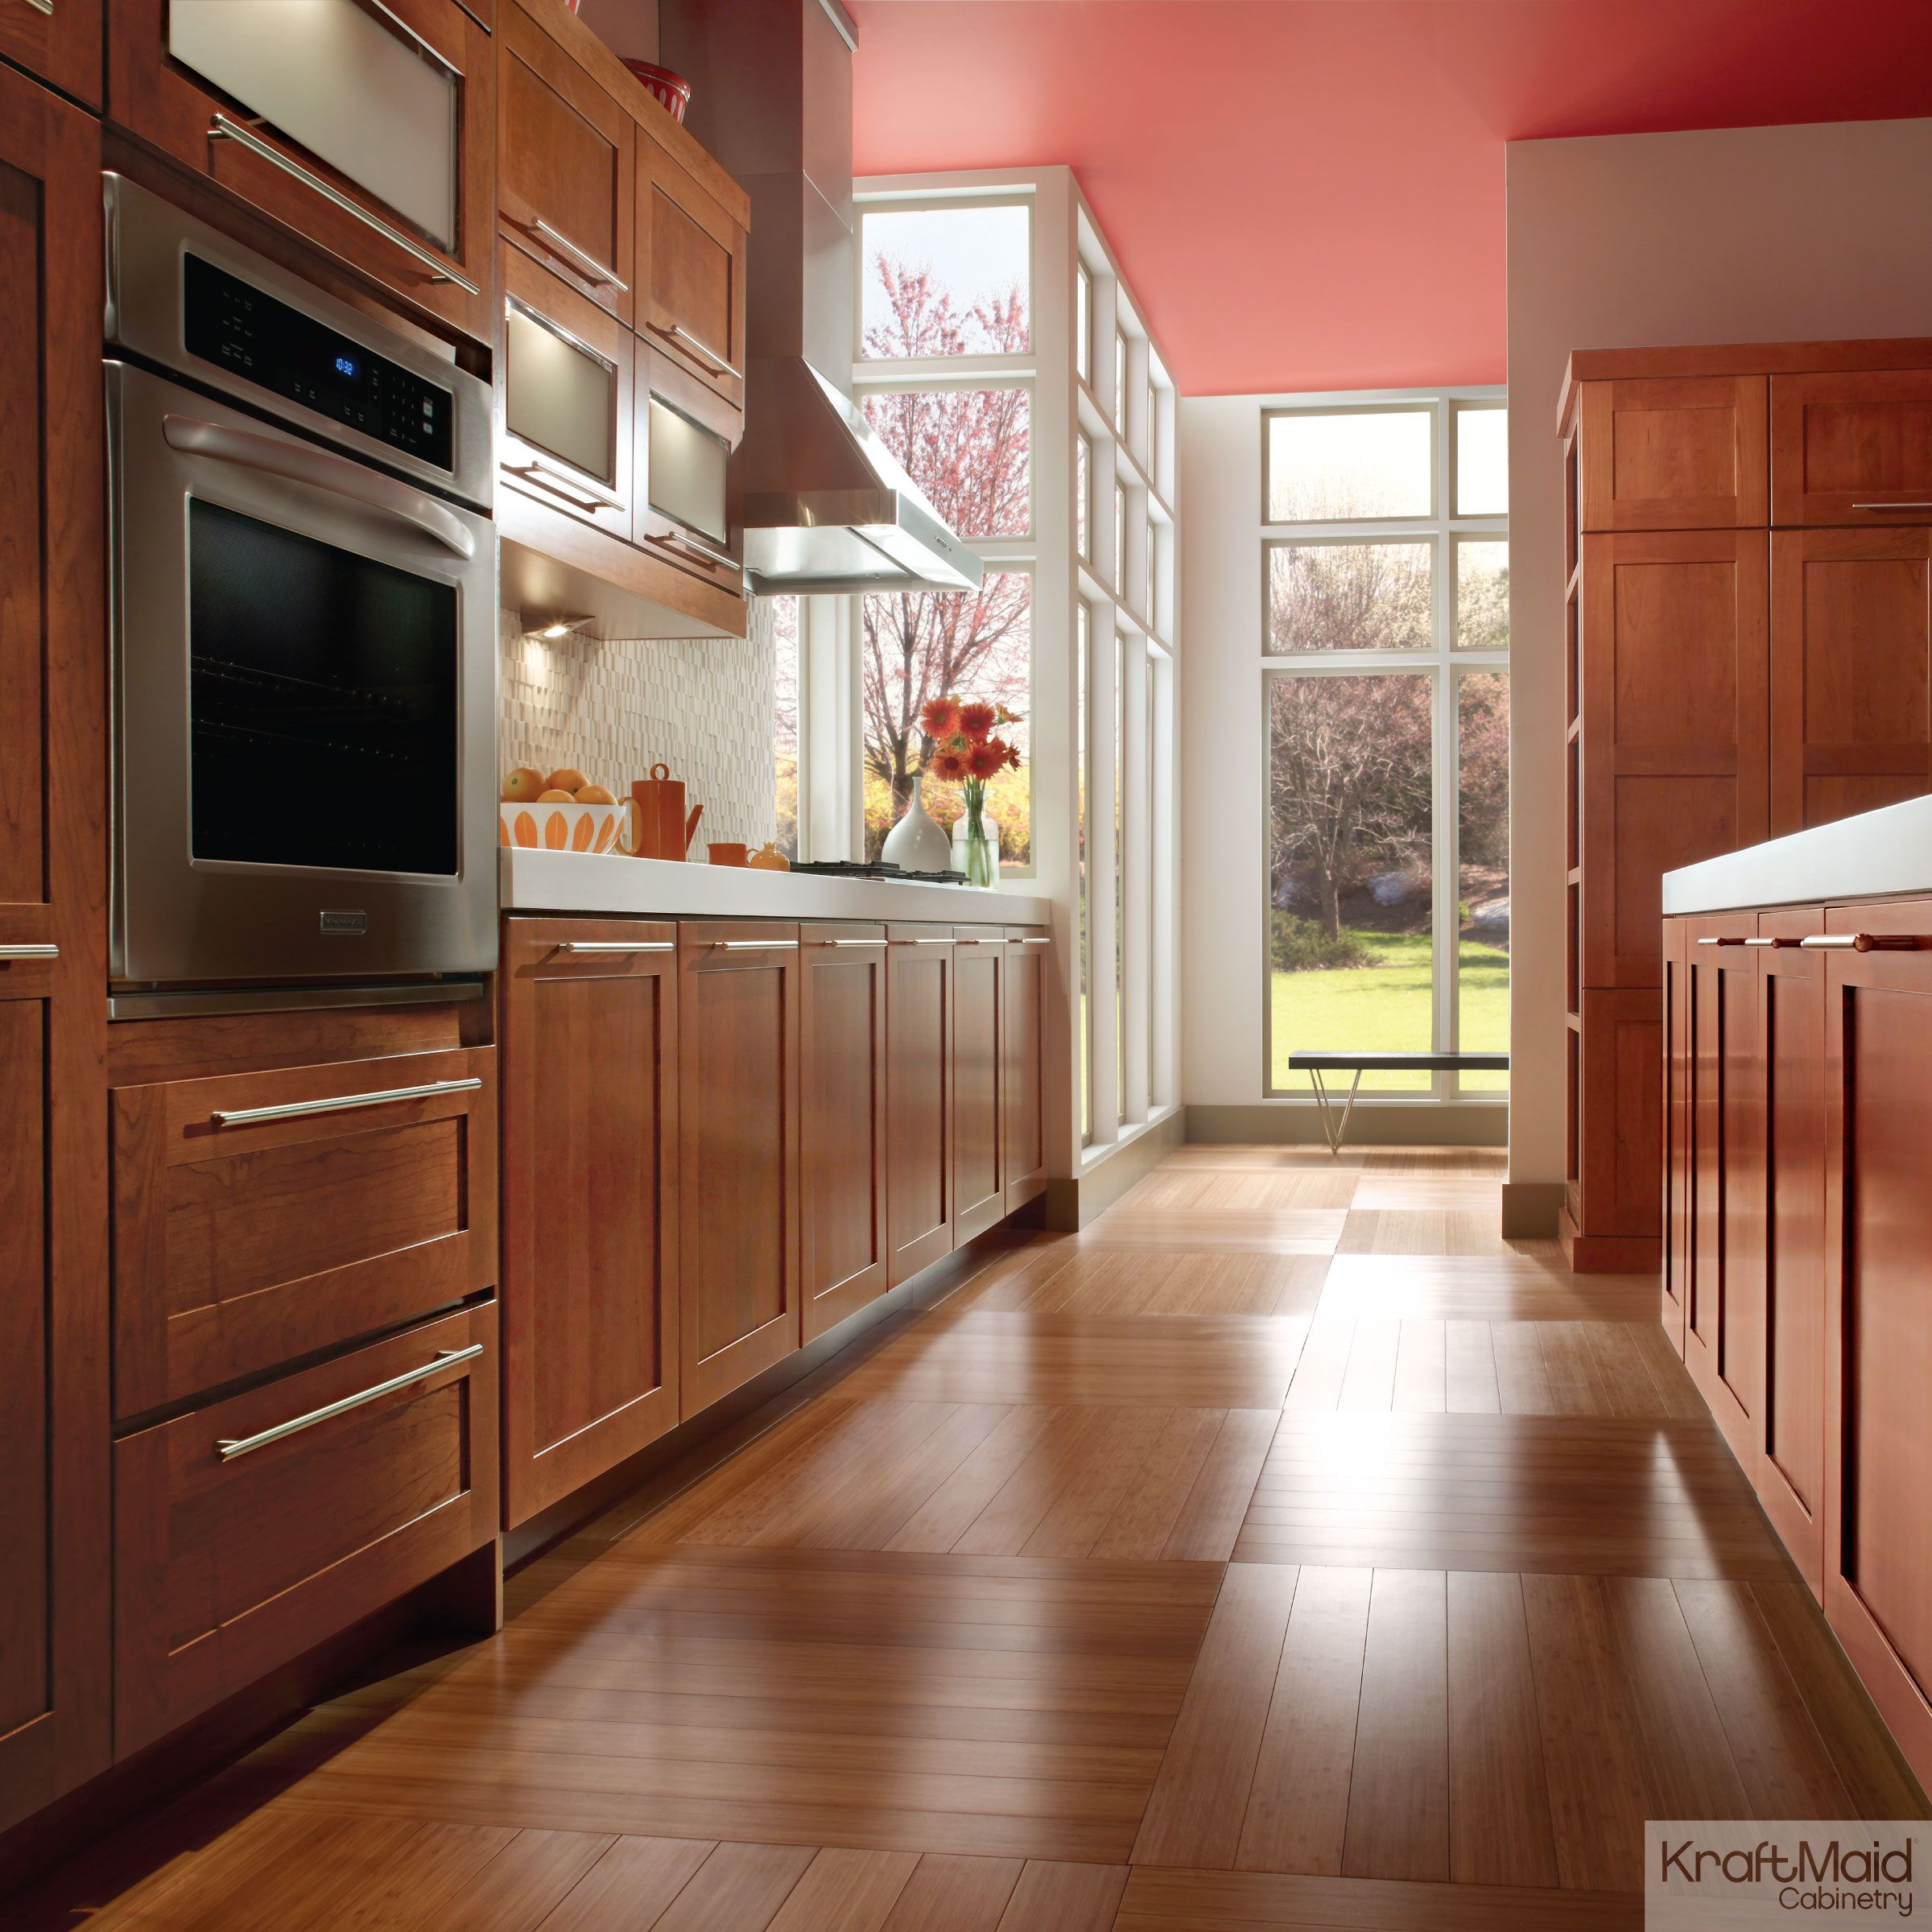 cherry cabinetry in kraftmaid s cinnamon stain adds warmth to this make your kitchen cabinet designs and remodeling ideas a reality with the most recognized brand of kitchen and bathroom cabinetry kraftmaid